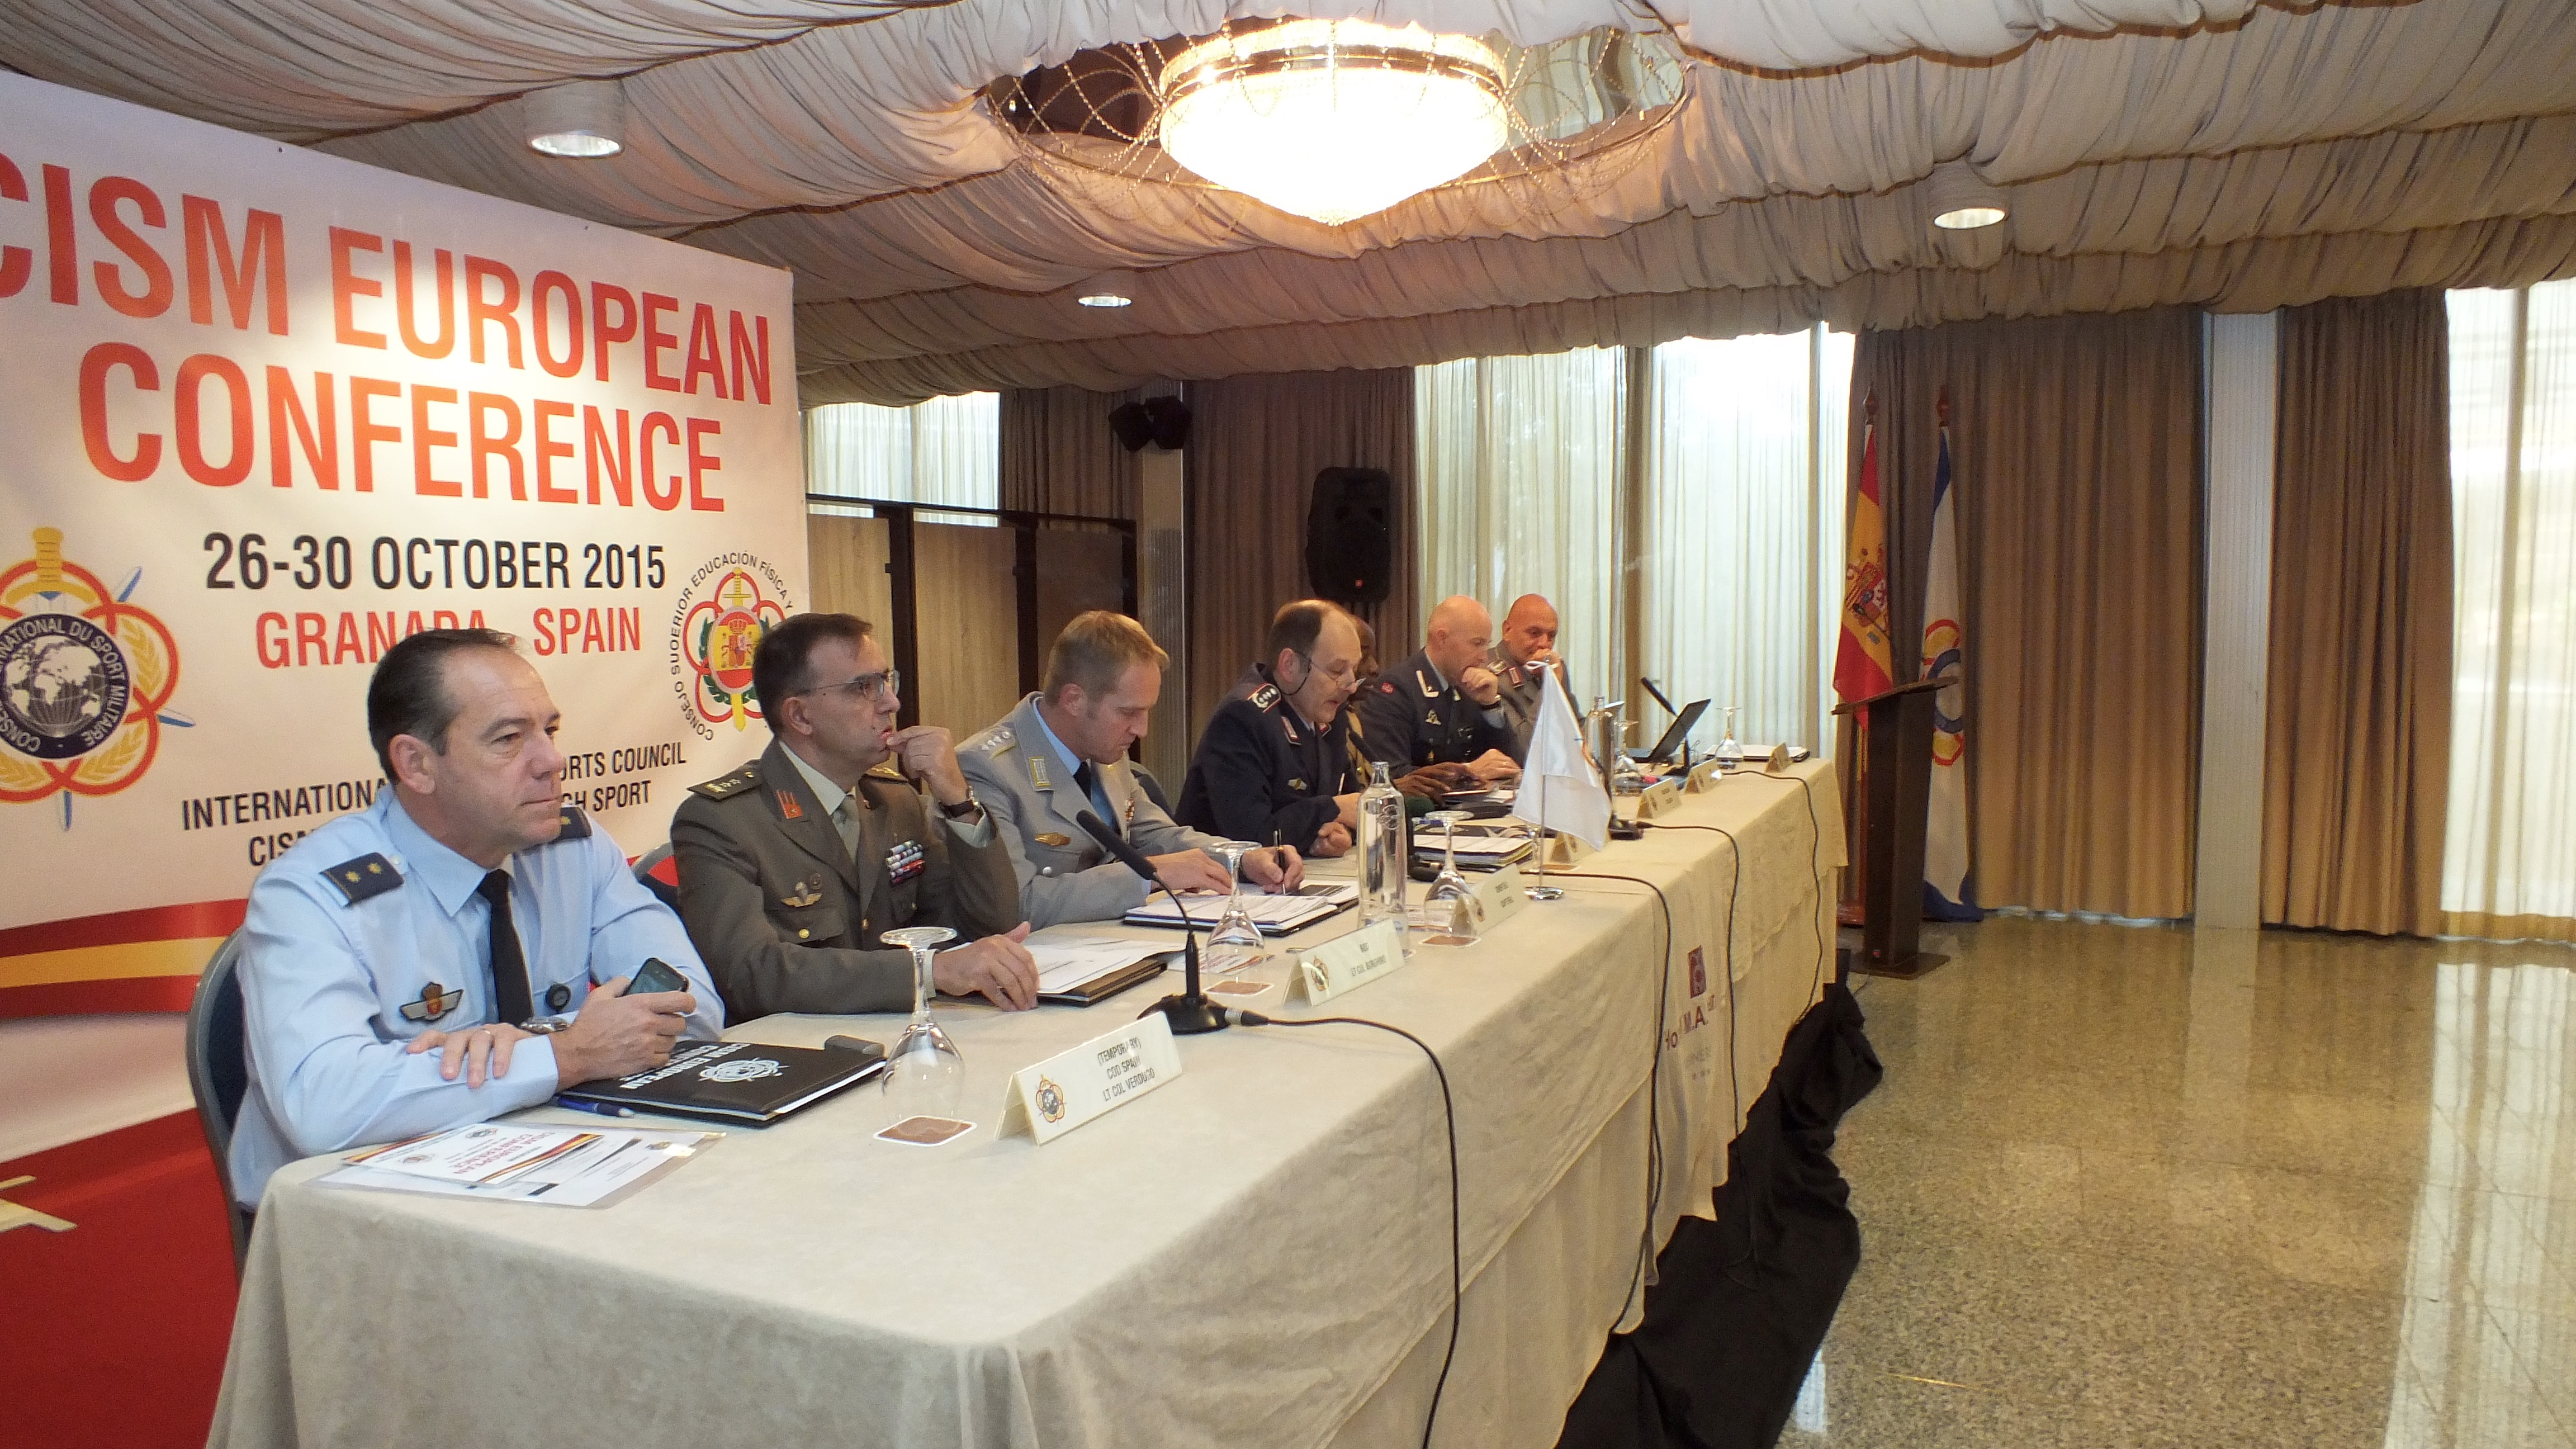 Presidency of the European Conference in Granada